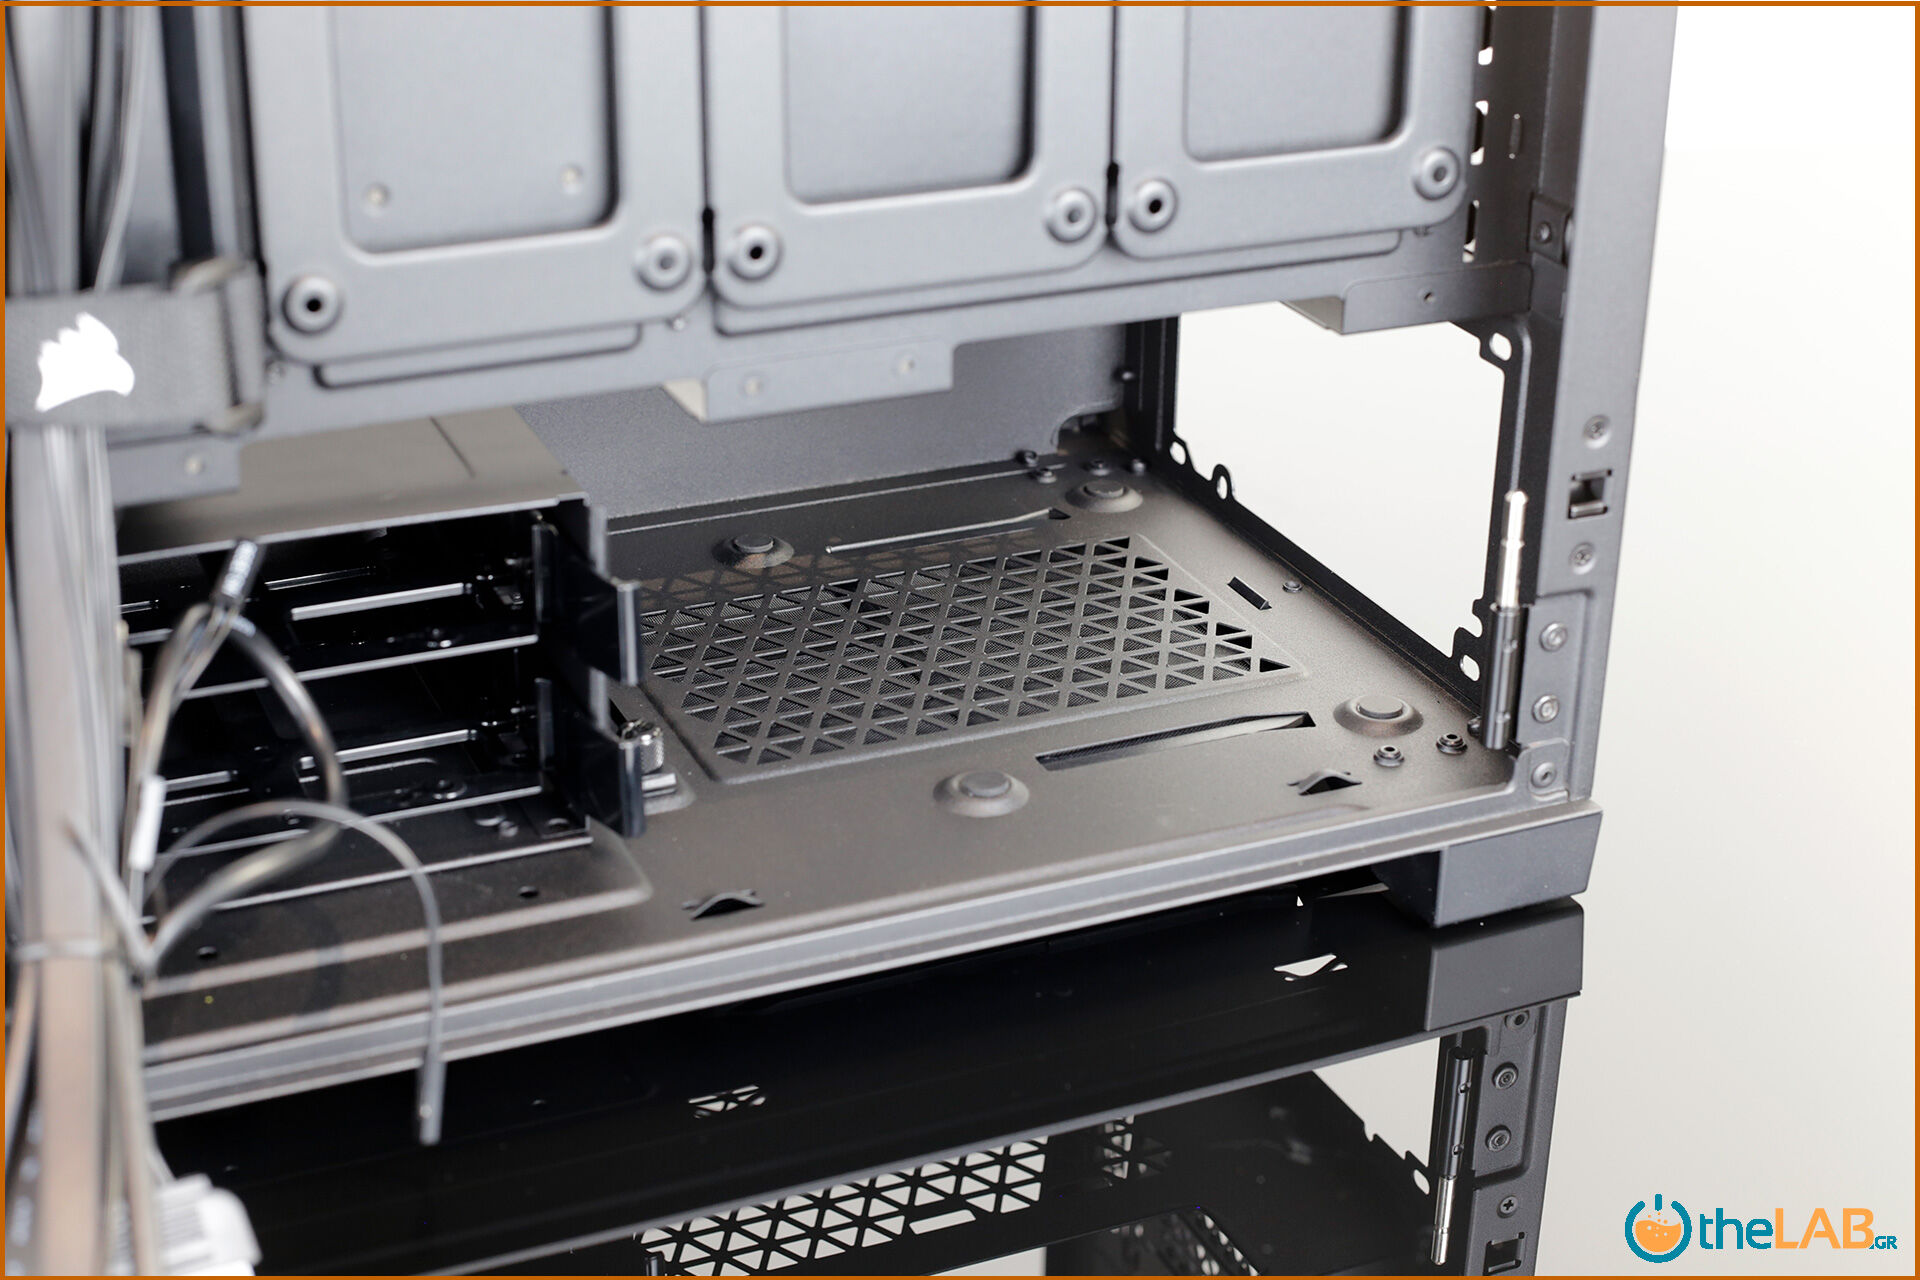 Corsair_icue_5000D__case_smart_exterior_interior_mid_tower_gaming_case_smart_review_image671.jpg